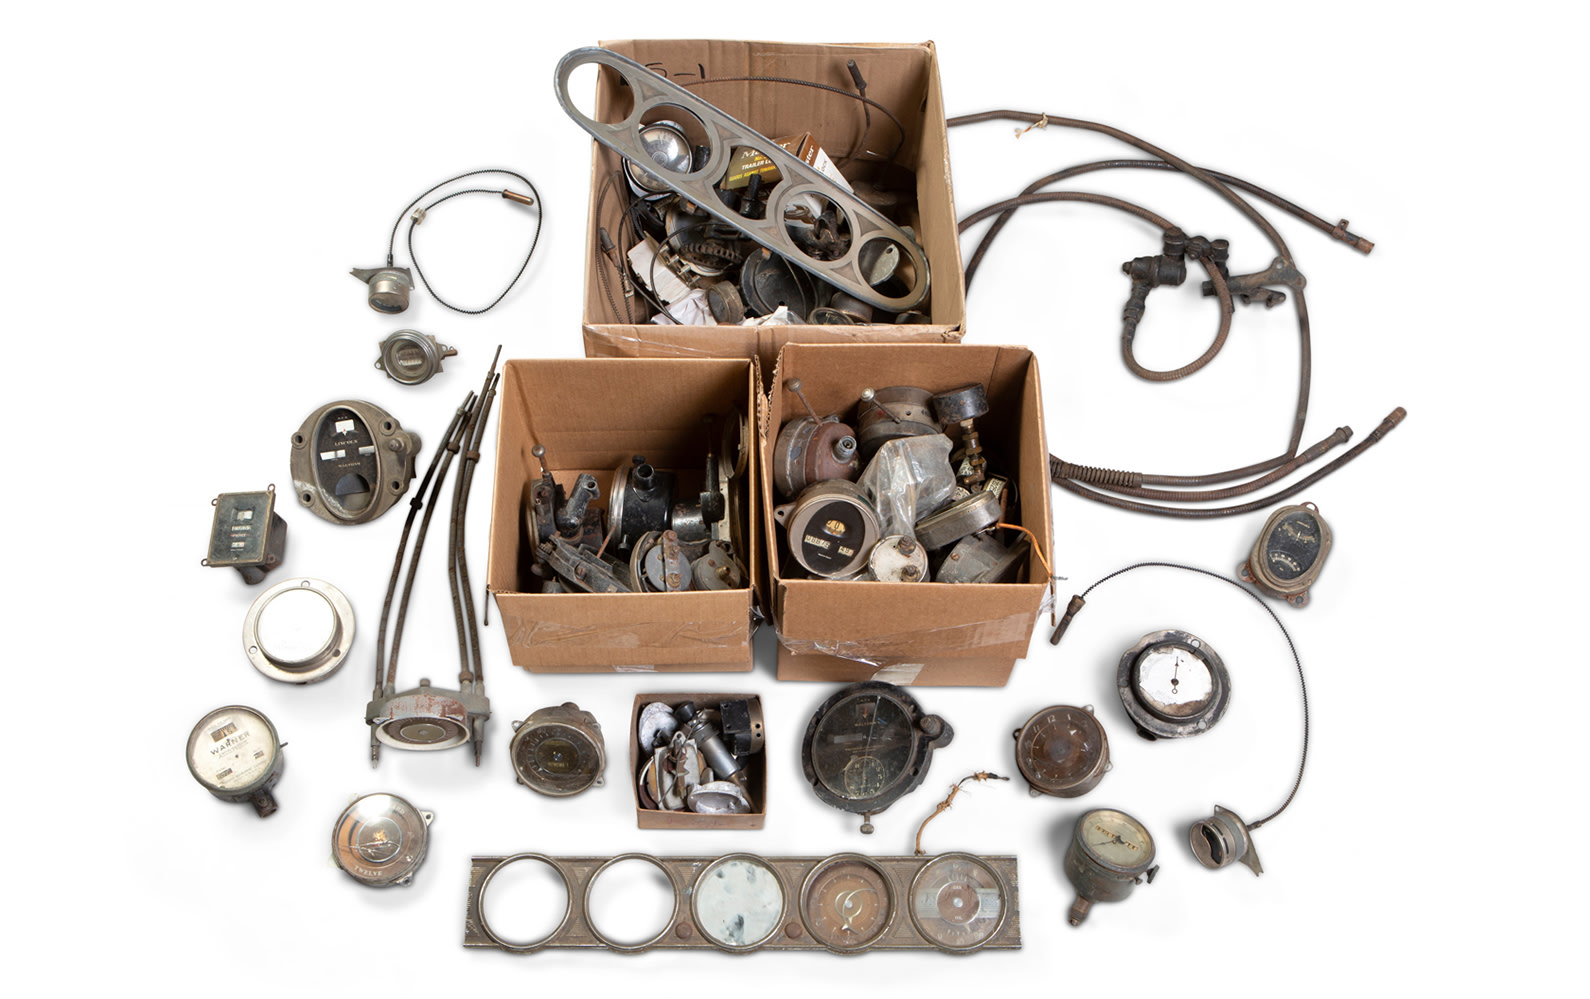 Automotive Instruments and Related Components